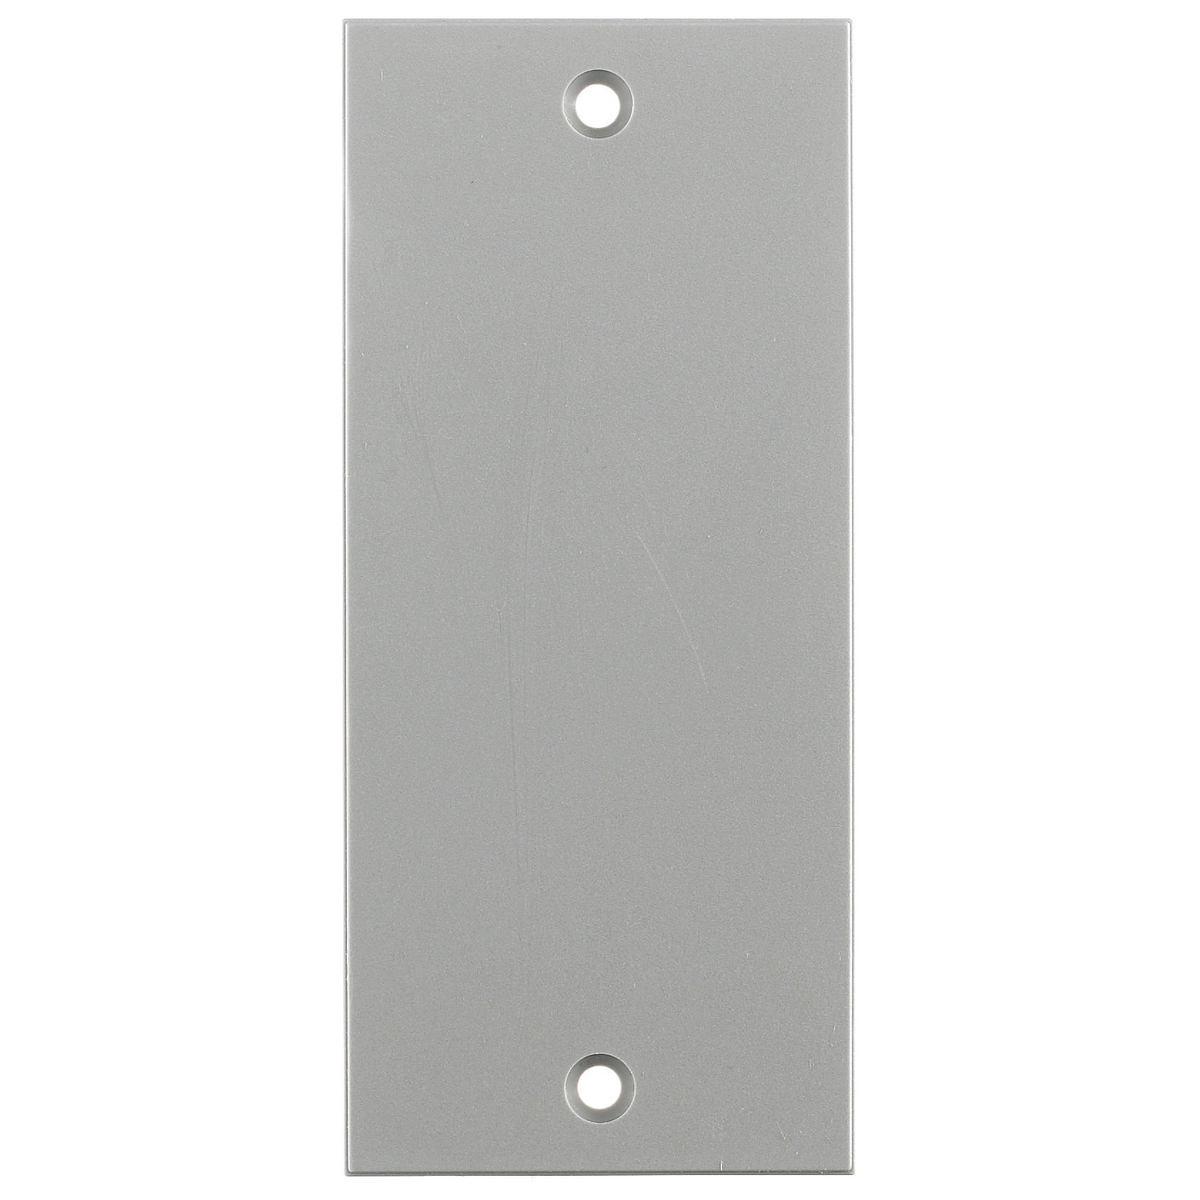 Hubbell HBLBL300SGY 2 x 4.5 Inch Gray Blank Screw Type Face Plate